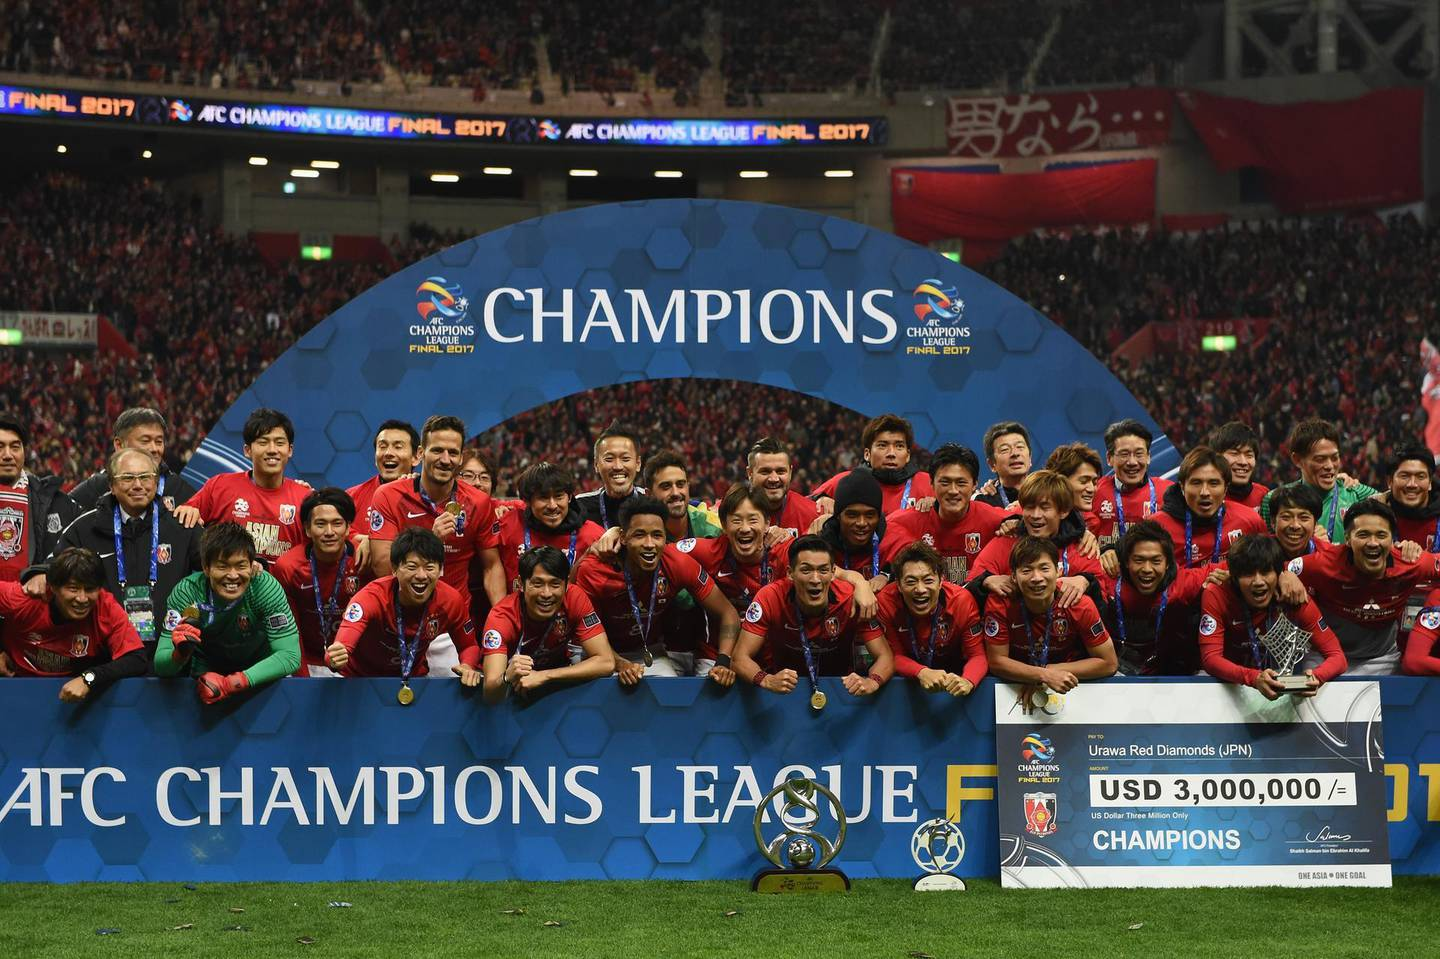 SAITAMA, JAPAN - NOVEMBER 25:  Urawa Red Diamonds players and staffs pose for photographs after the AFC Champions League Final second leg match between Urawa Red Diamonds and Al-Hilal at Saitama Stadium on November 25, 2017 in Saitama, Japan.  (Photo by Etsuo Hara/Getty Images)